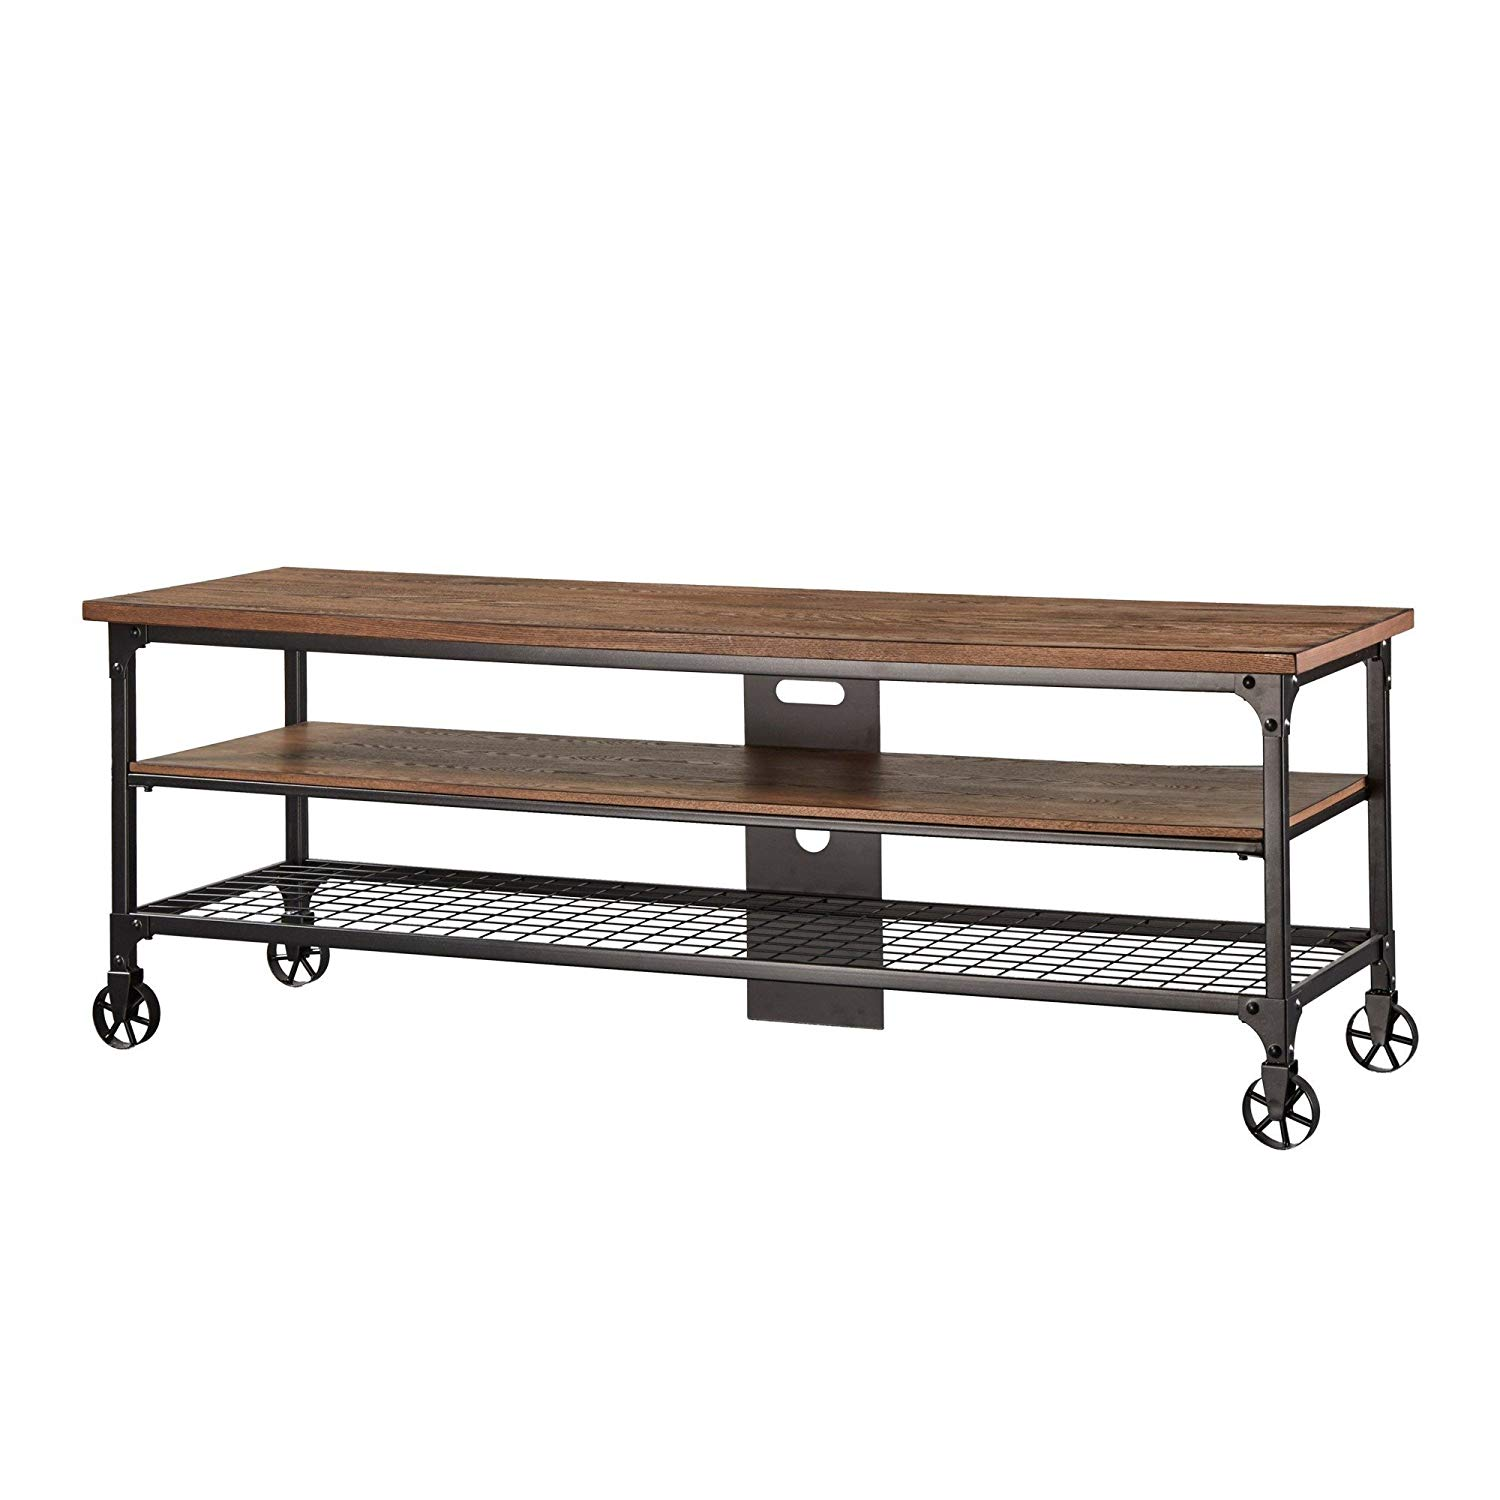 6a3b10189cce Industrial Nelson Industrial Modern Rustic Console Sofa Table TV Stand Made  with MDF Black Sand Finish